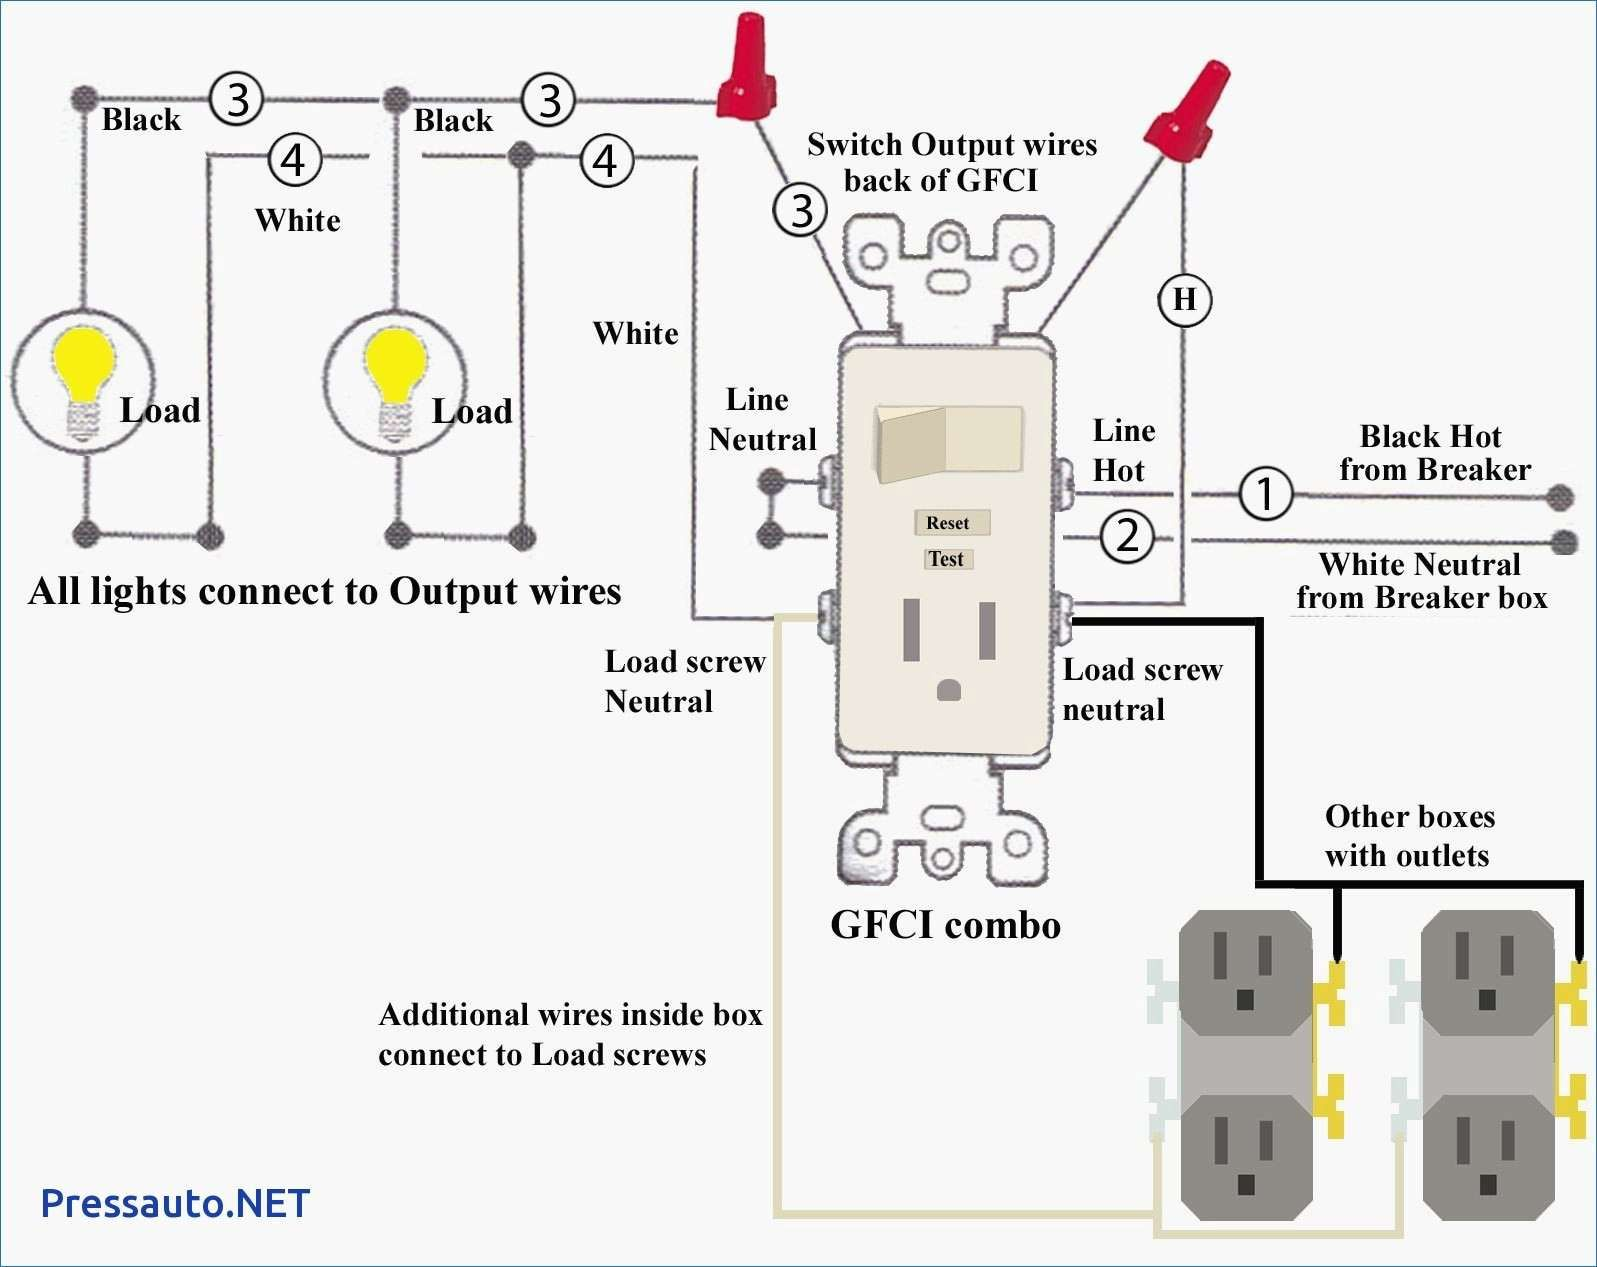 Wiring Diagram Outlets Outlet wiring, Gfci, Diagram